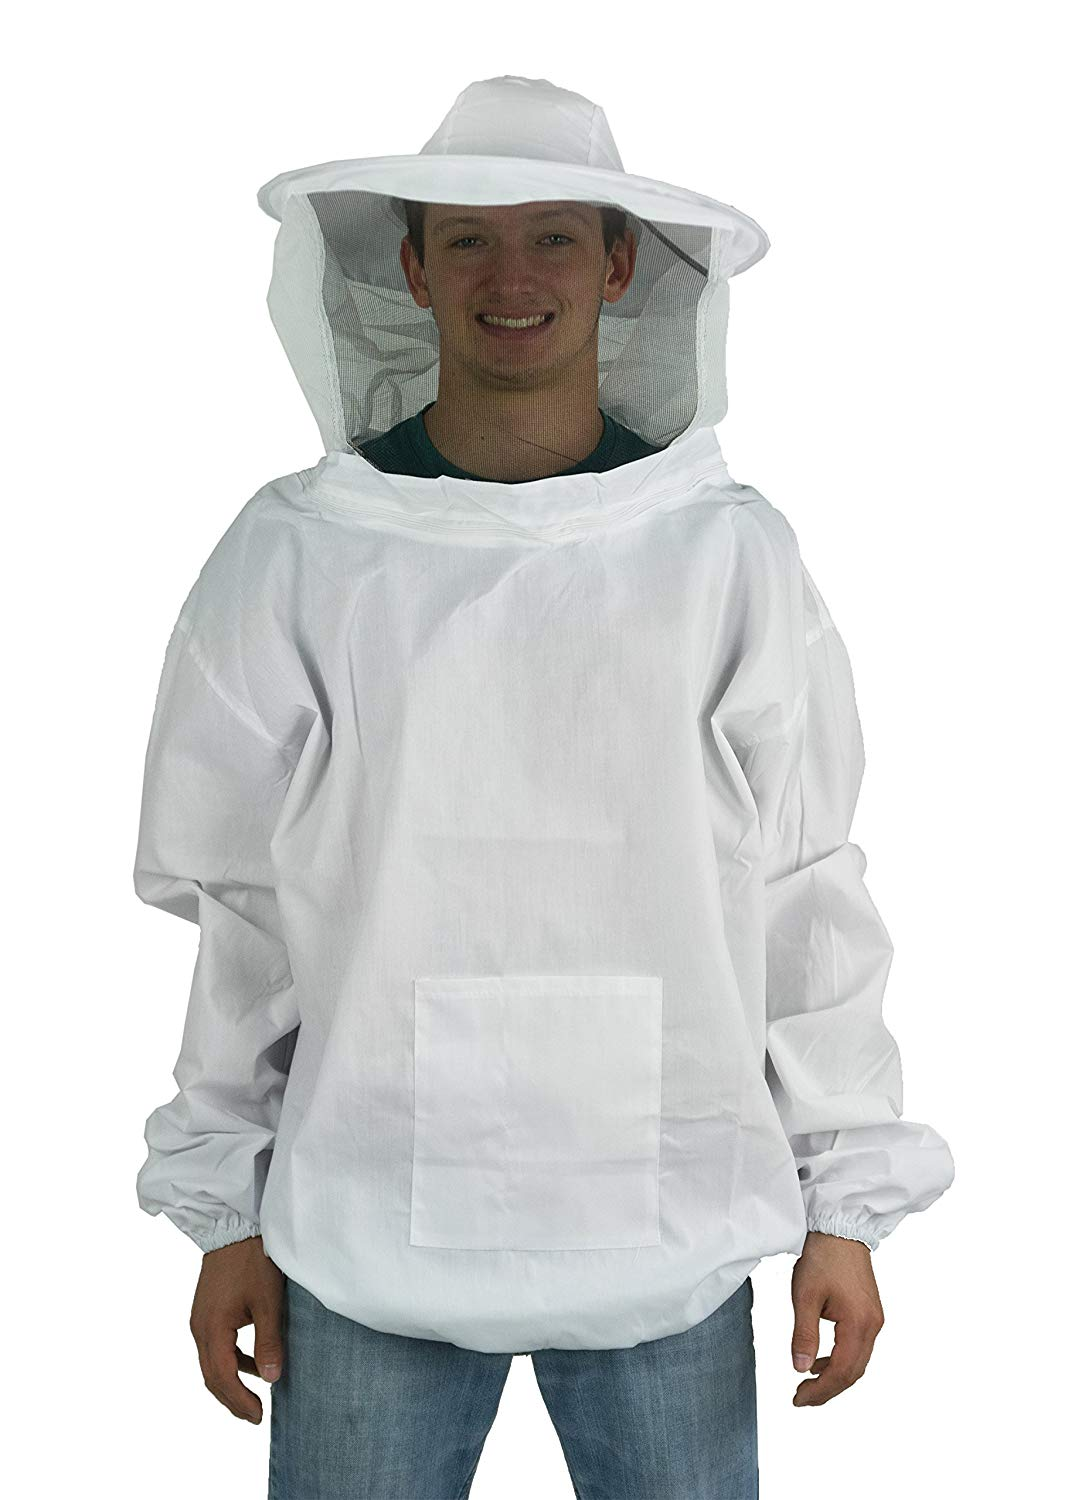 9. VIVO Professional Bee Keeping suit (BEE-V105XL)